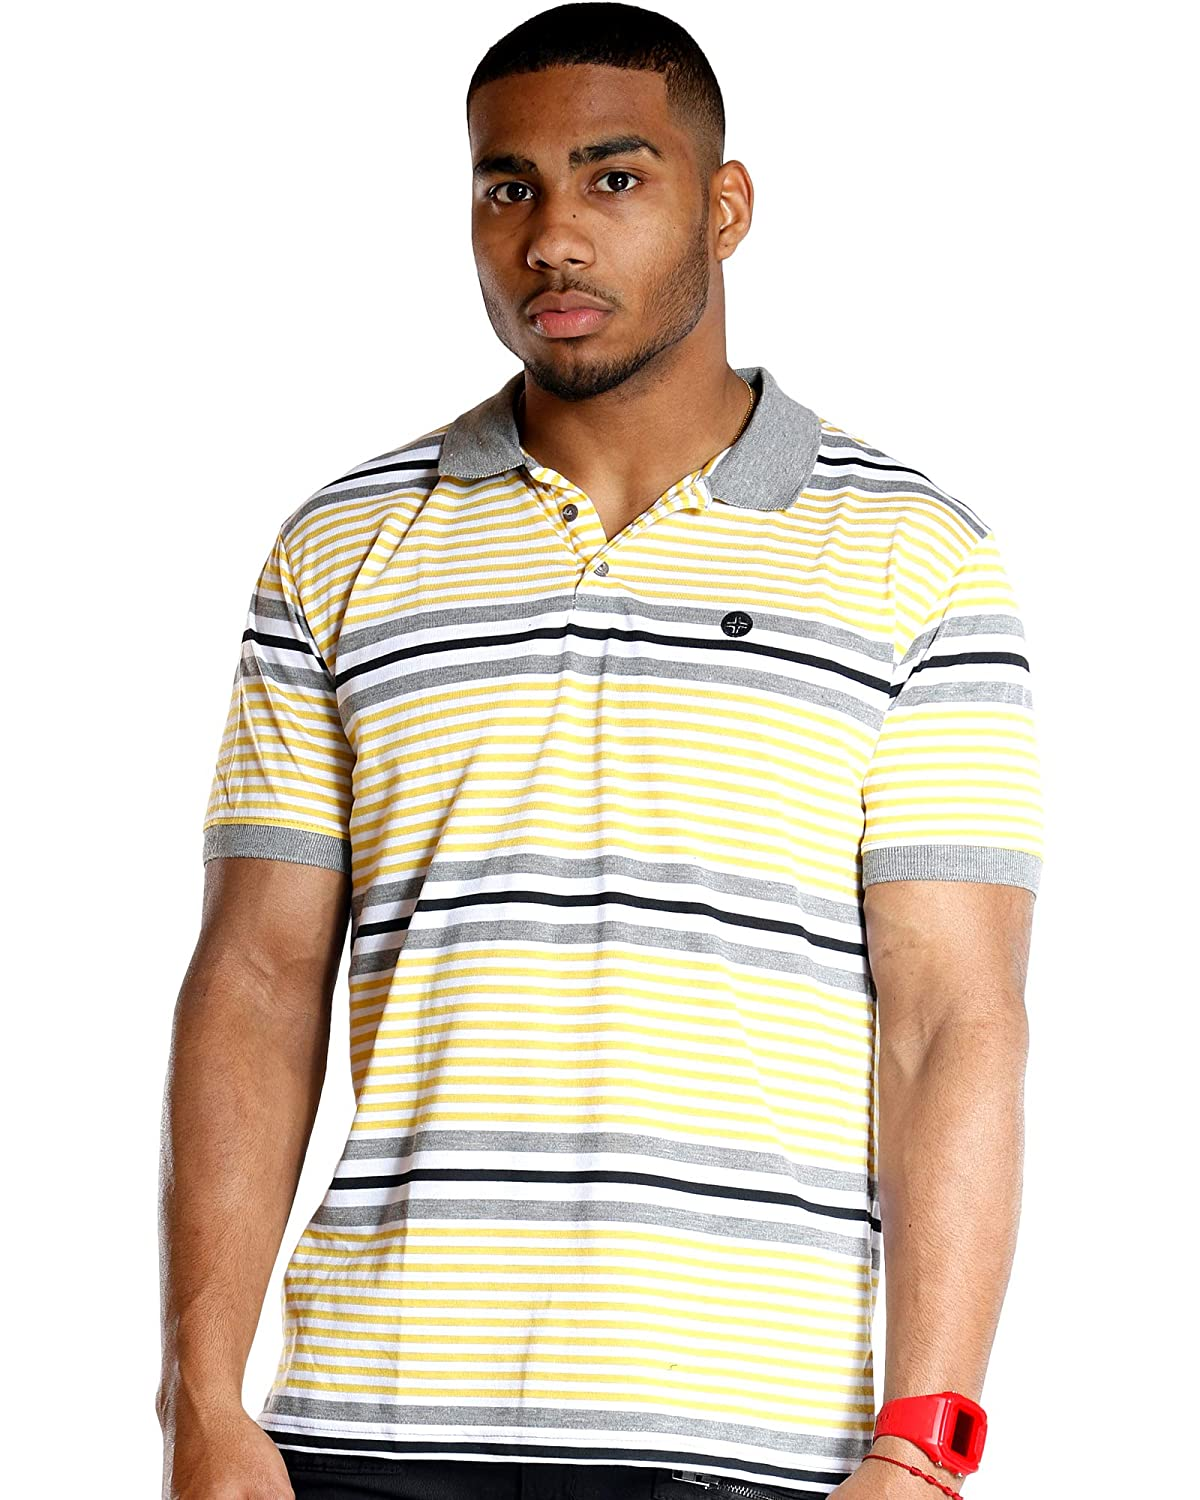 Ankor East Vim Mens Yellow Short Sleeve Striped Jersey Polo Shirt